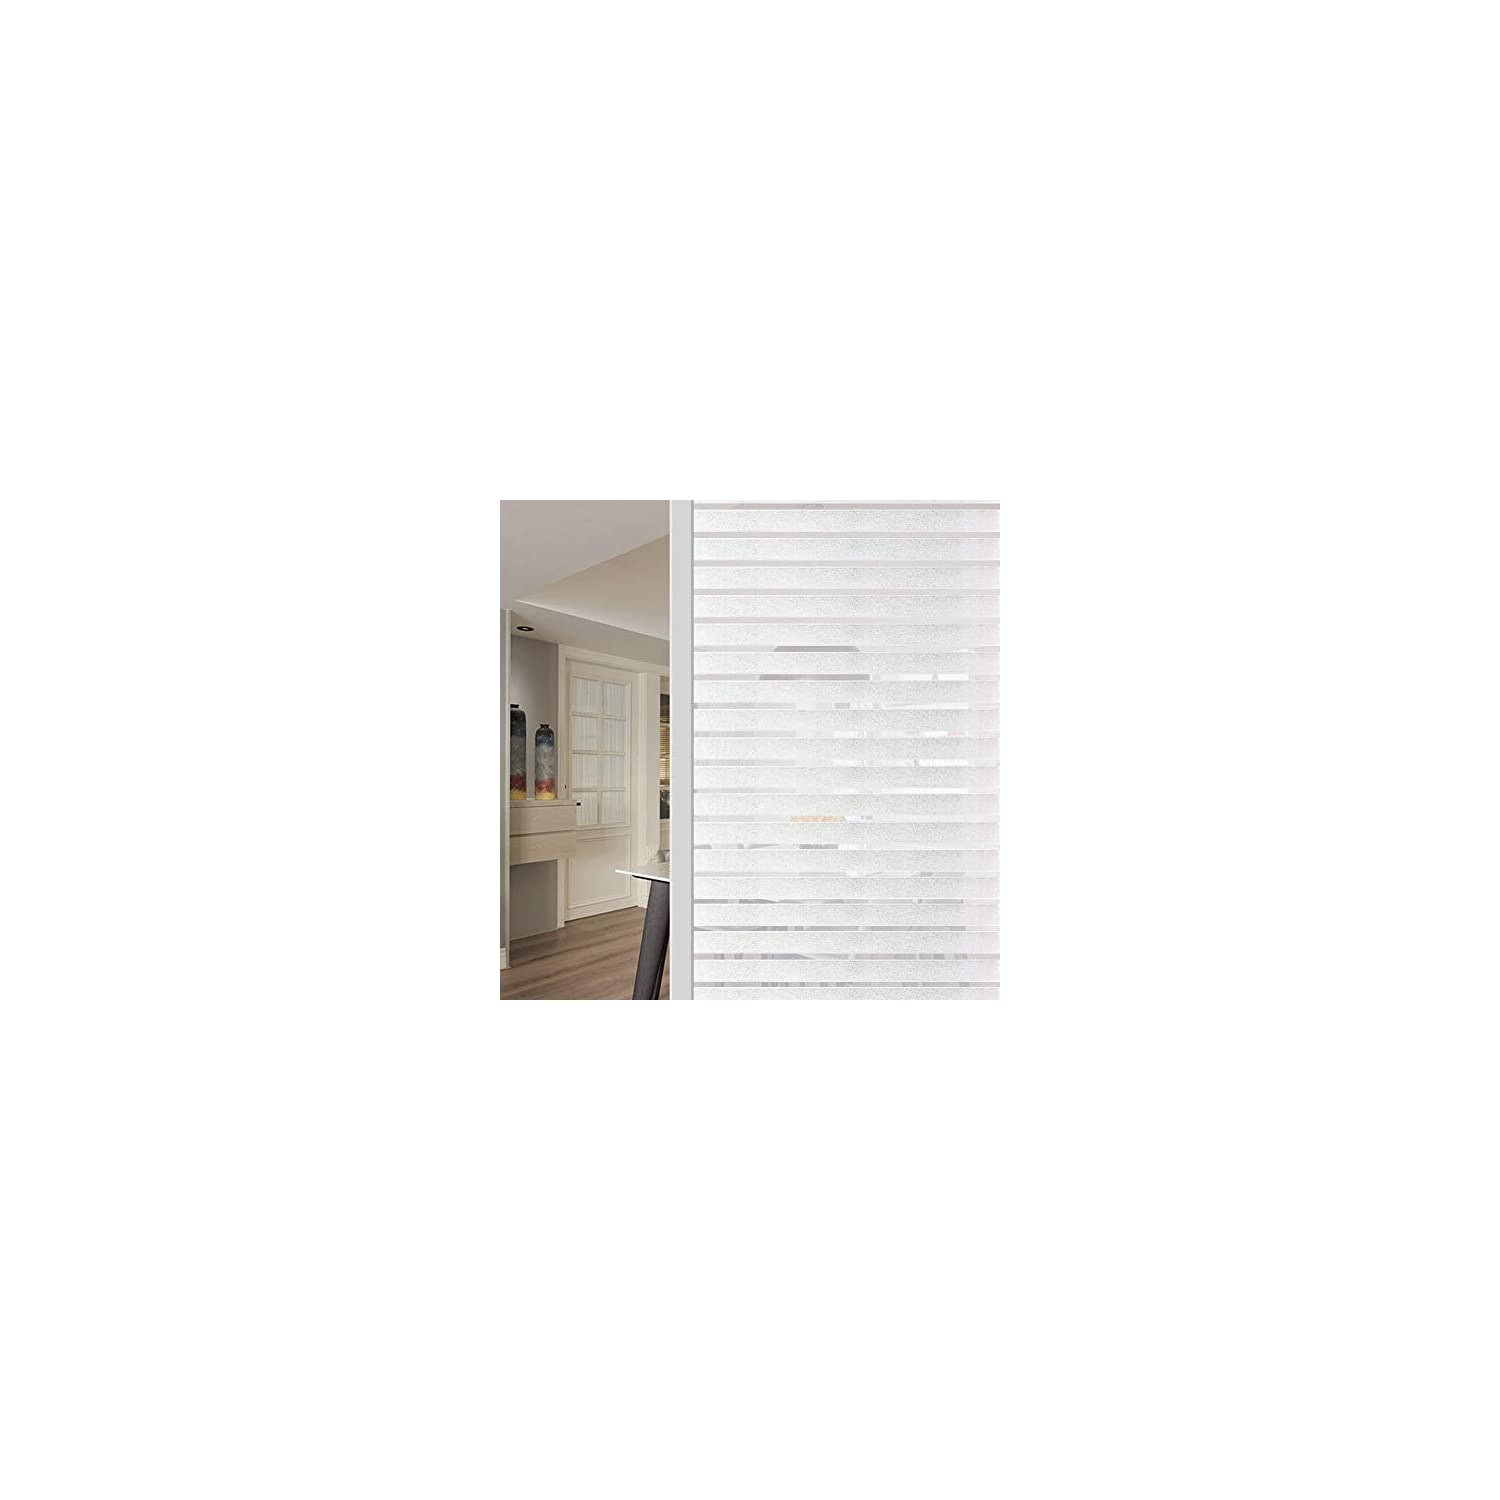 WochiTV Office Privacy Window Film, Stripes Privacy Window Film No Glue, Window Tint with Frosted Static Cling UV Protection, Window Sticker for Home Office Kitchen – 17.5 Inch x 6.56 Feet, Stripe